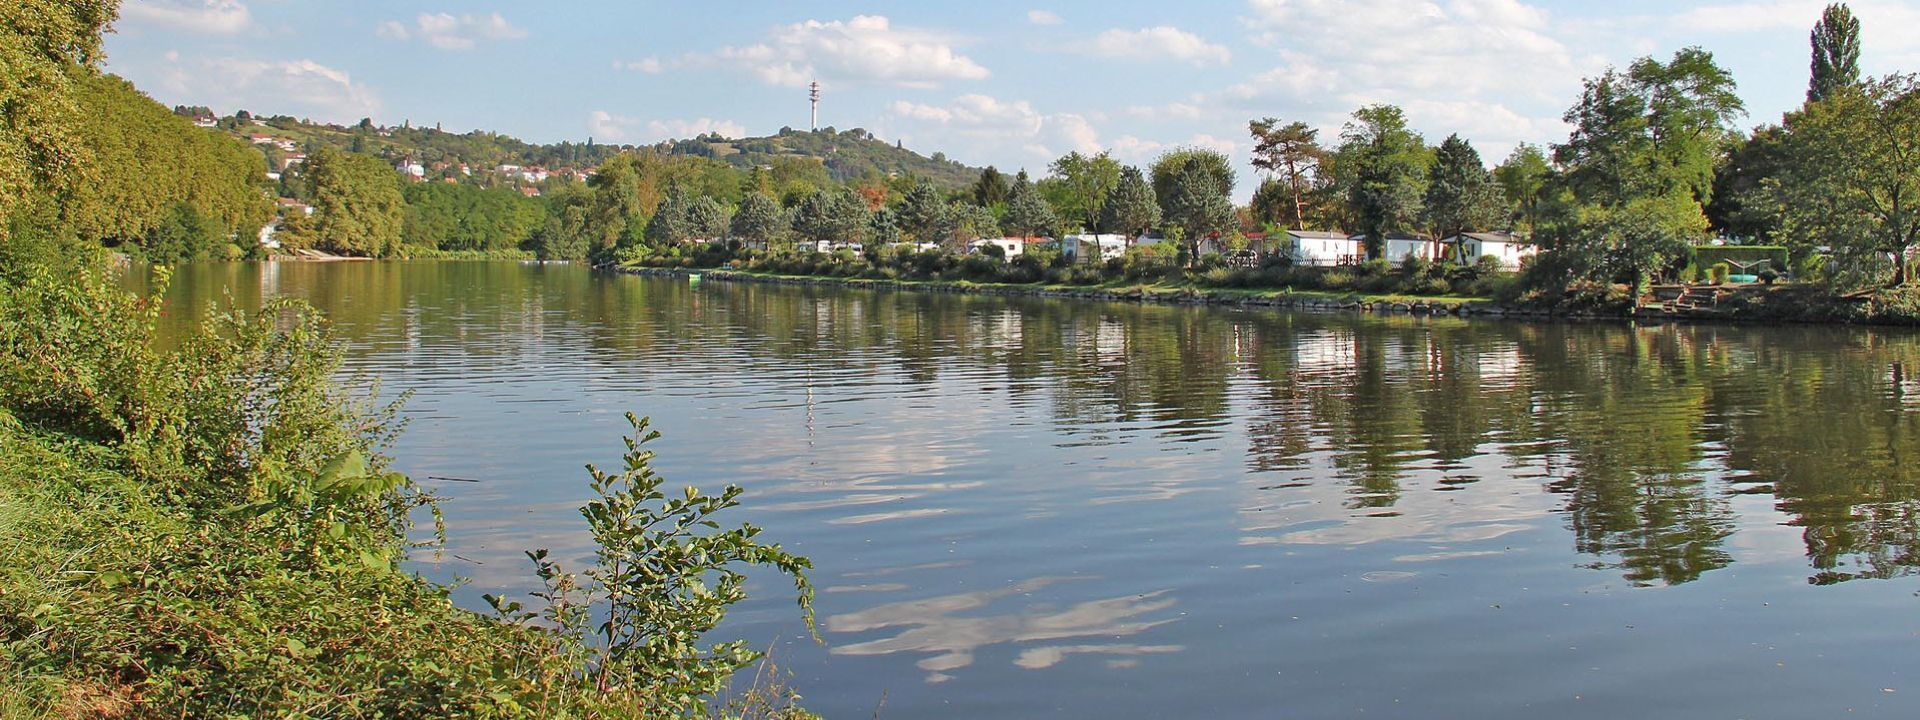 Camping Beau Rivage (Allier)